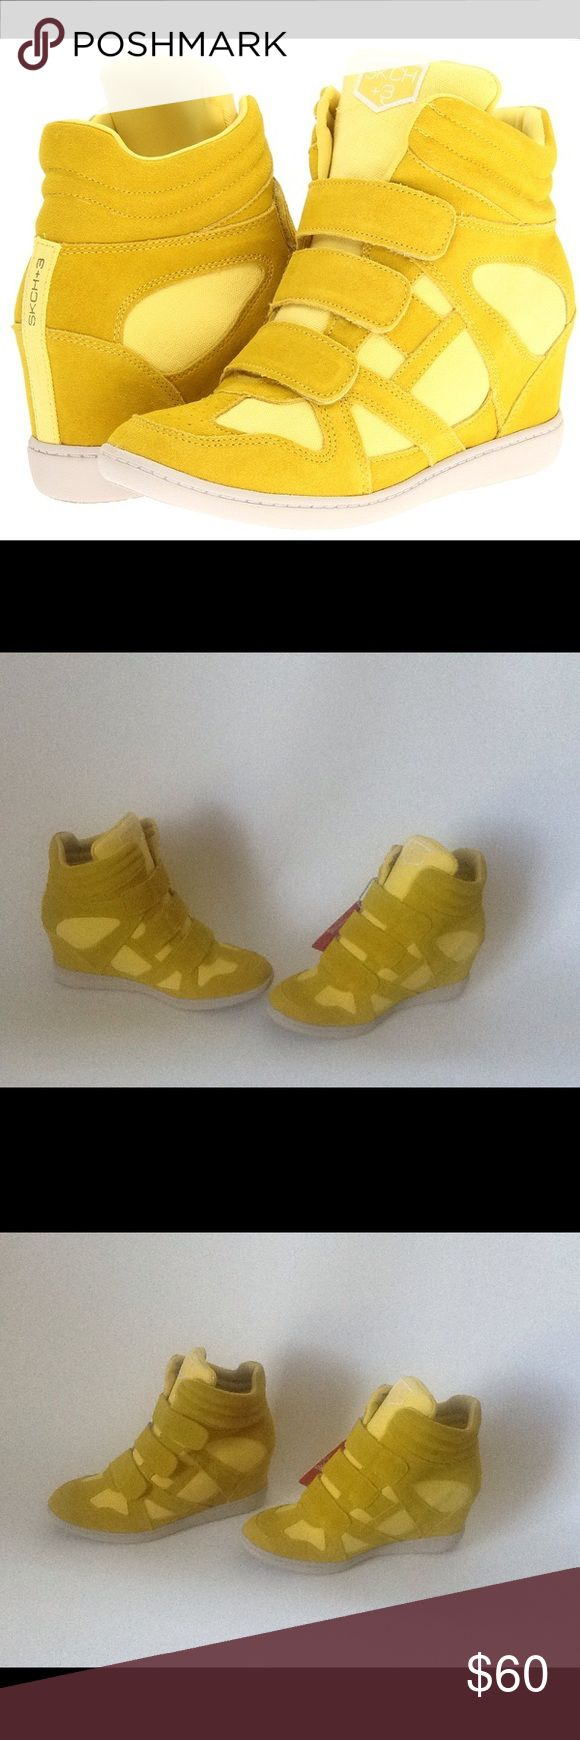 Skechers Yellow Raise The Bar Wedge Sneakers These shoes are New and have Never been Worn!! They don't come with a Box!! Skechers Shoes Sneakers